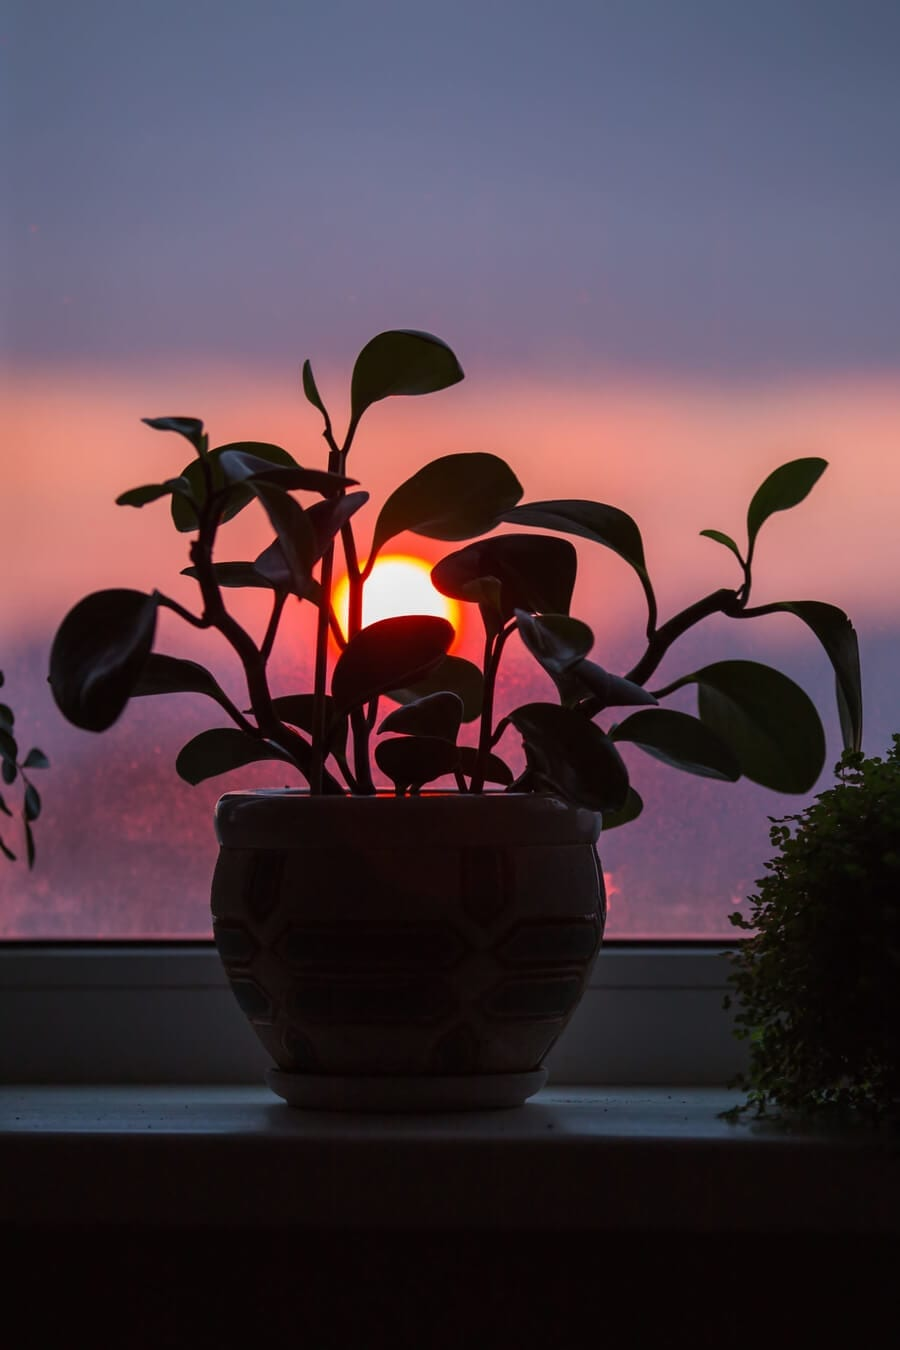 House Plant At Sunset